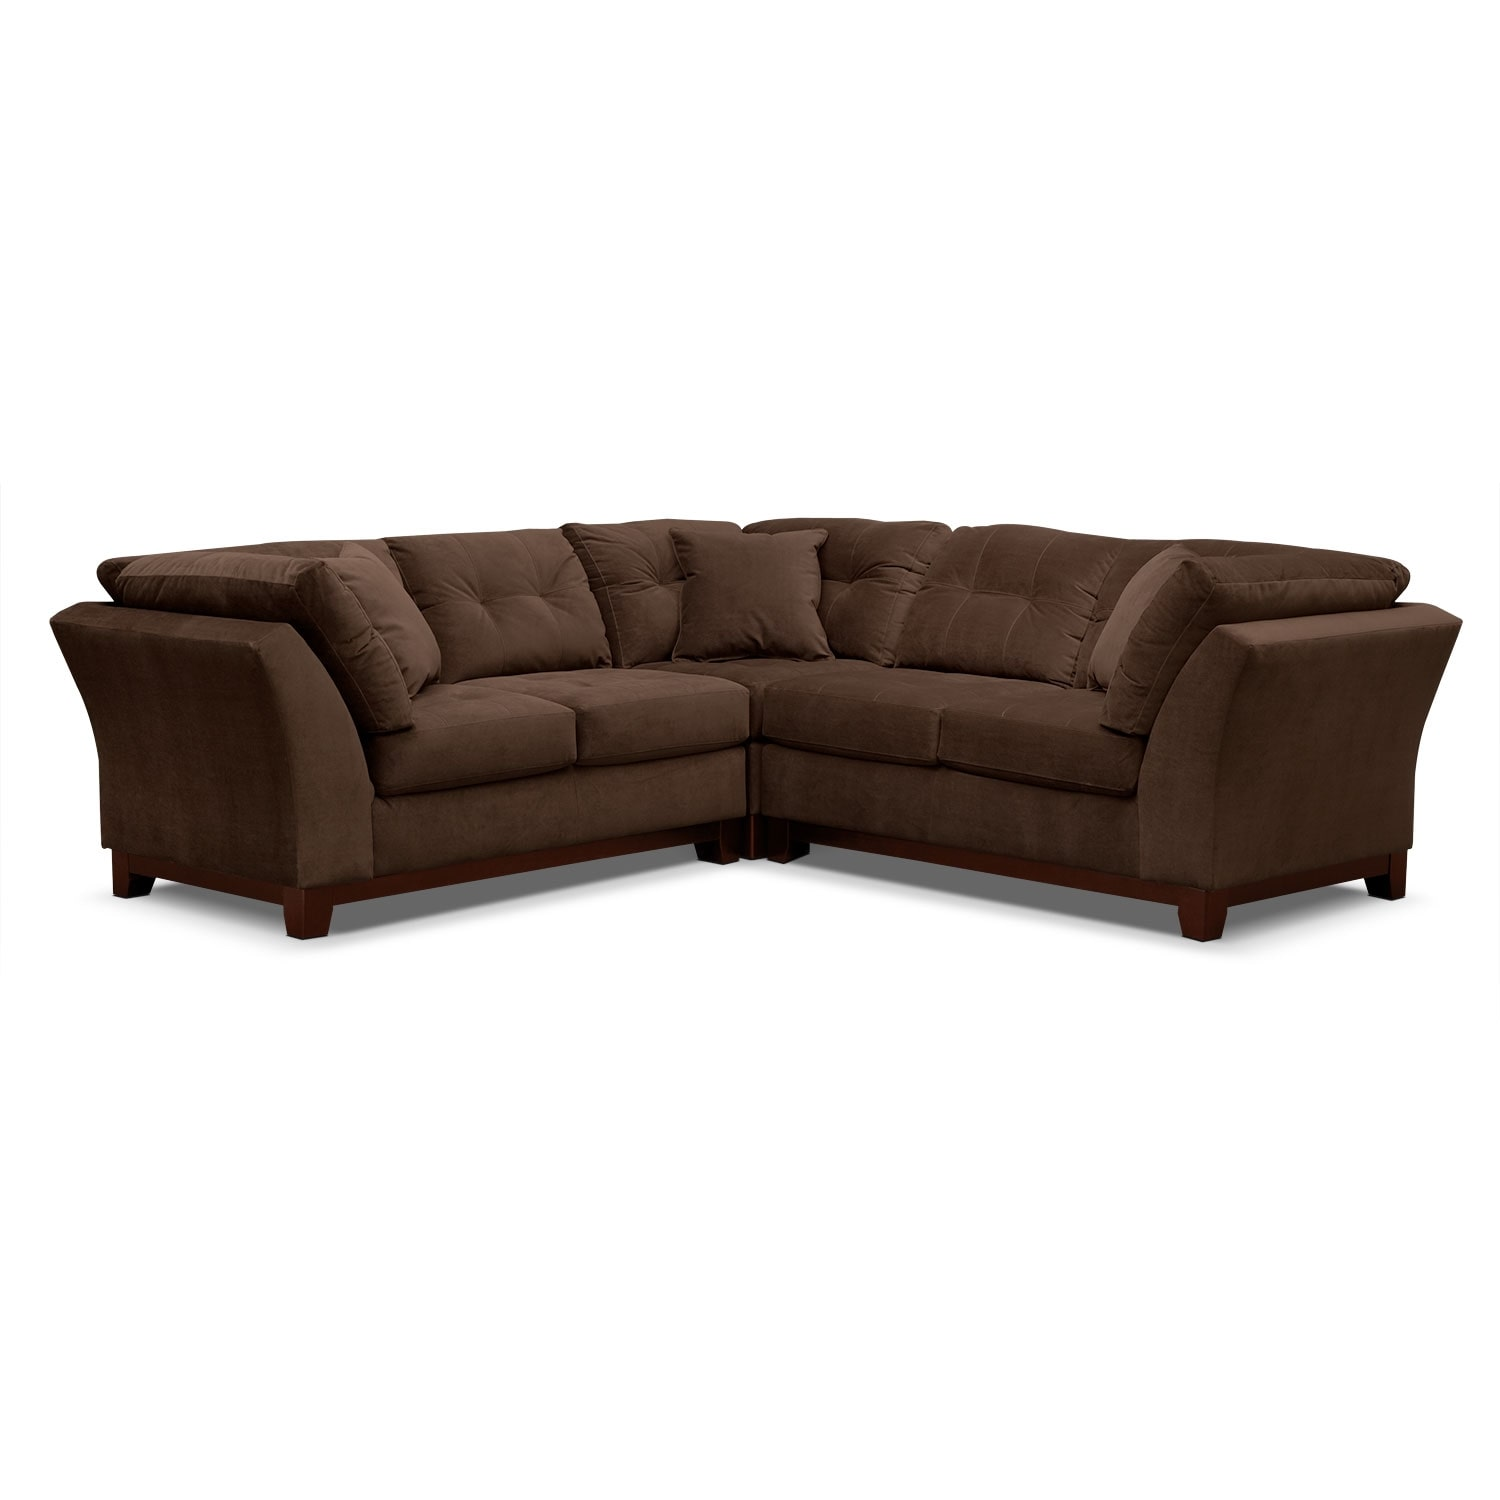 Living Room Furniture - Solace 3-Piece Sectional - Chocolate